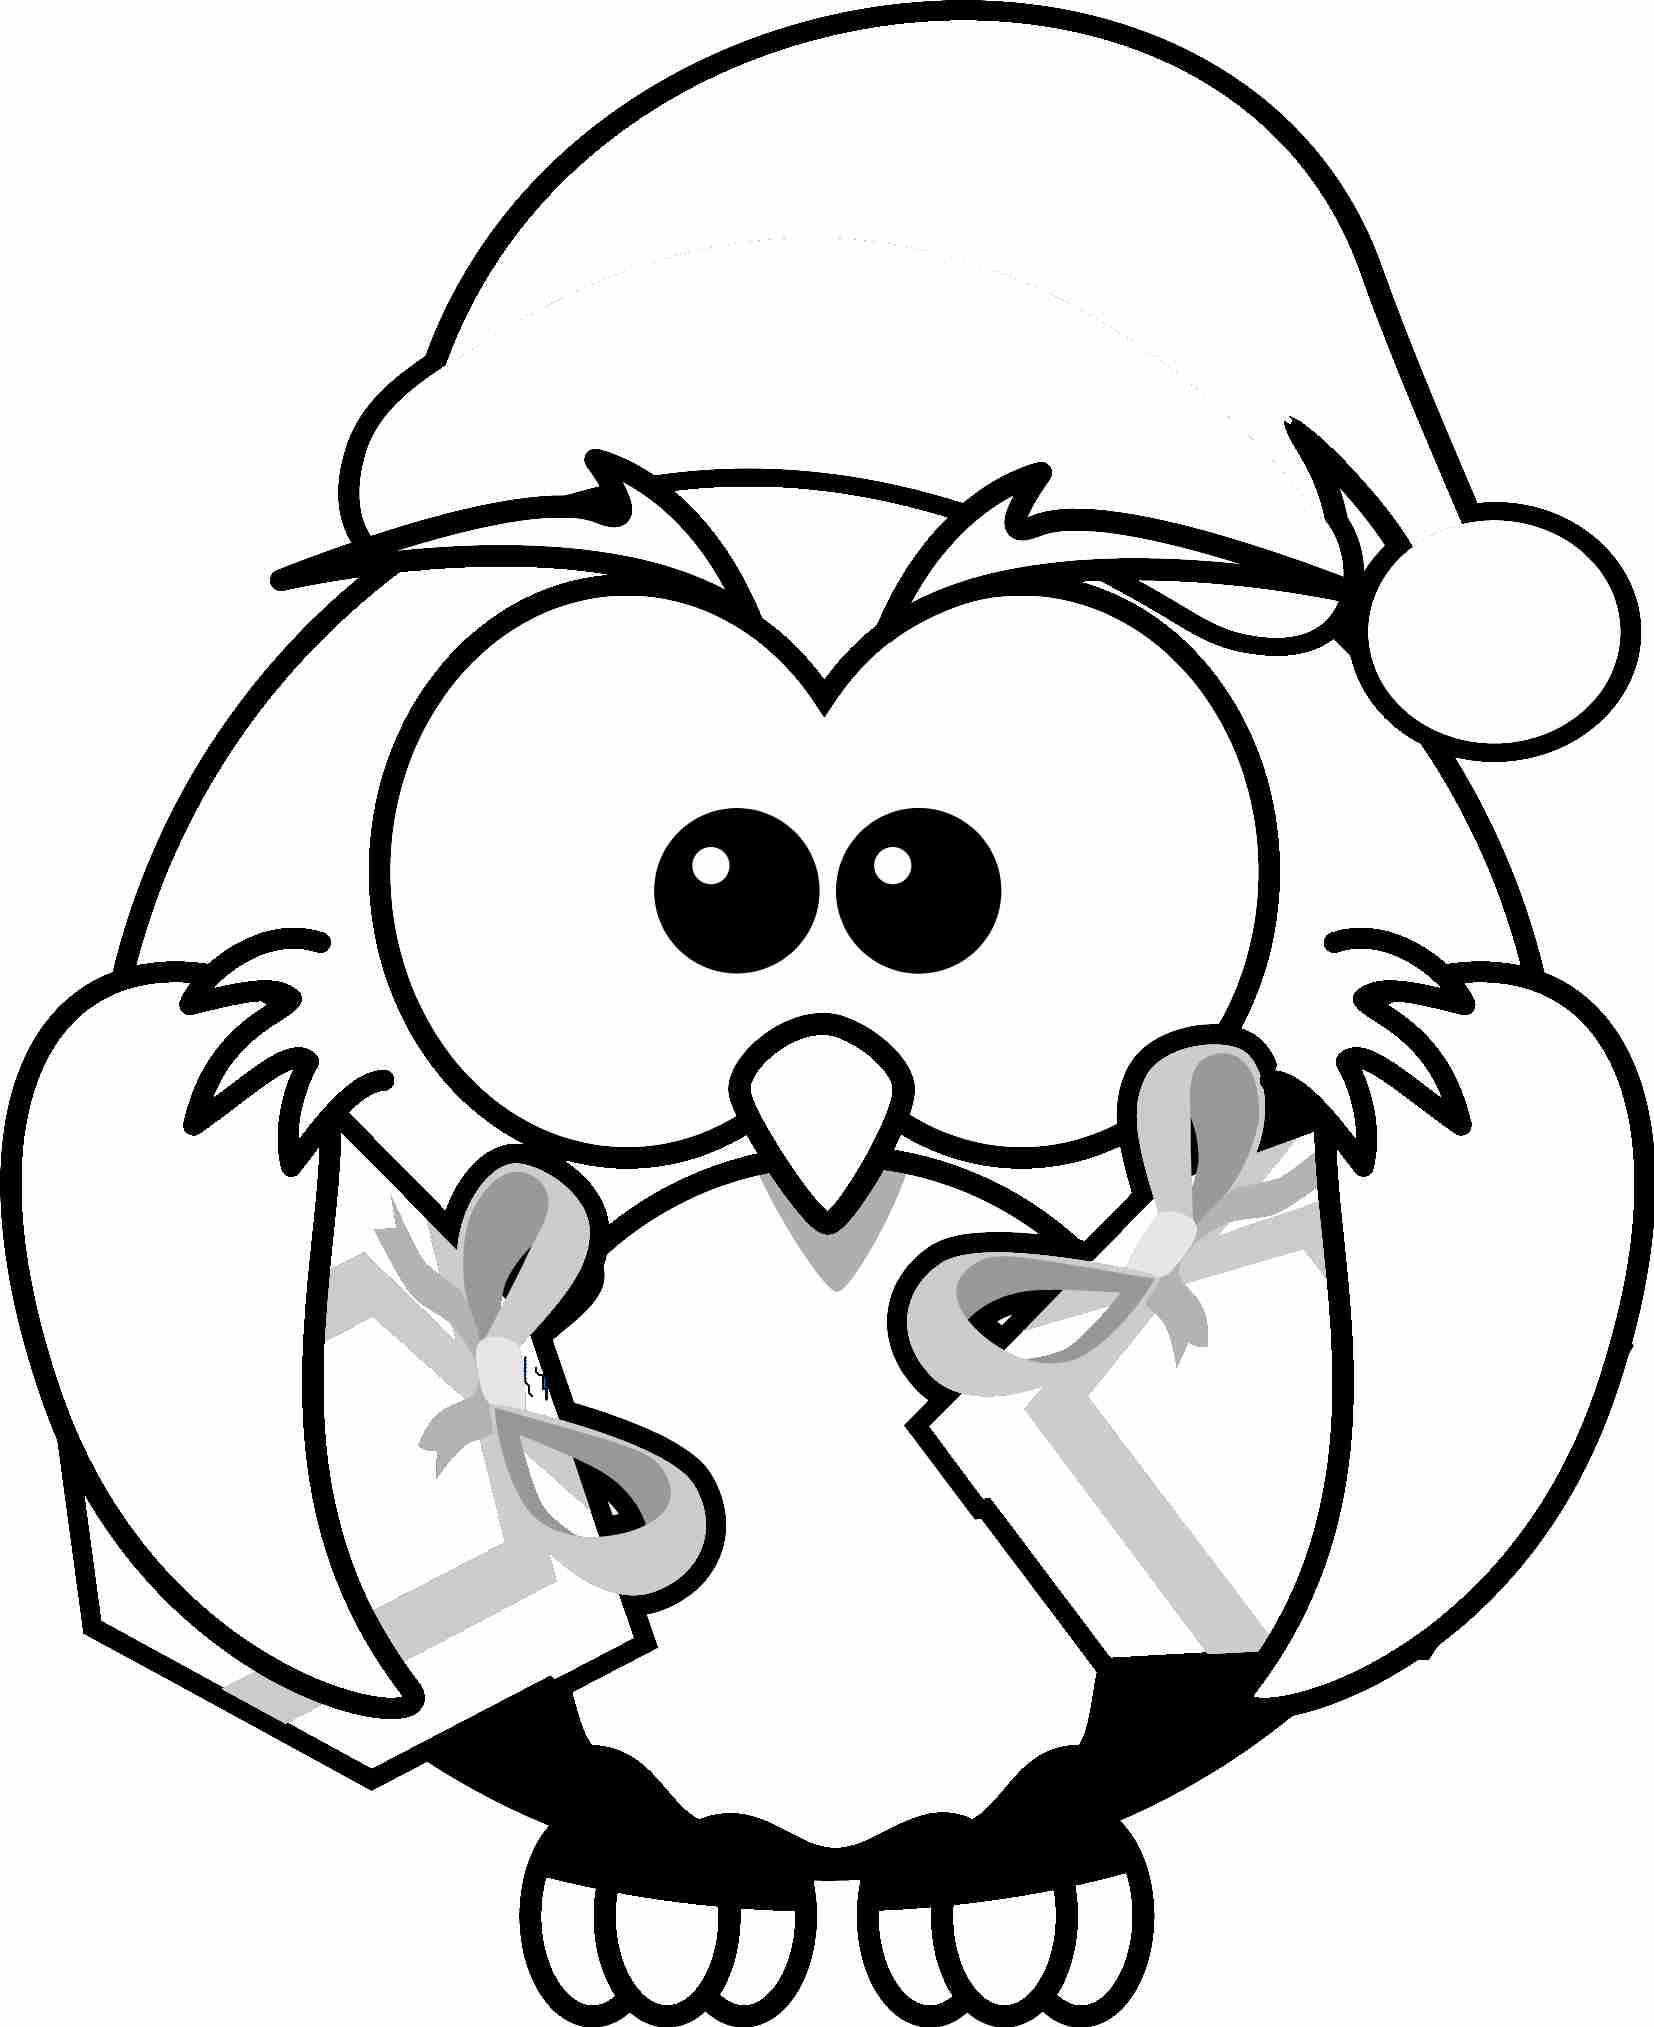 1654x2027 Penguin Coloring Pages